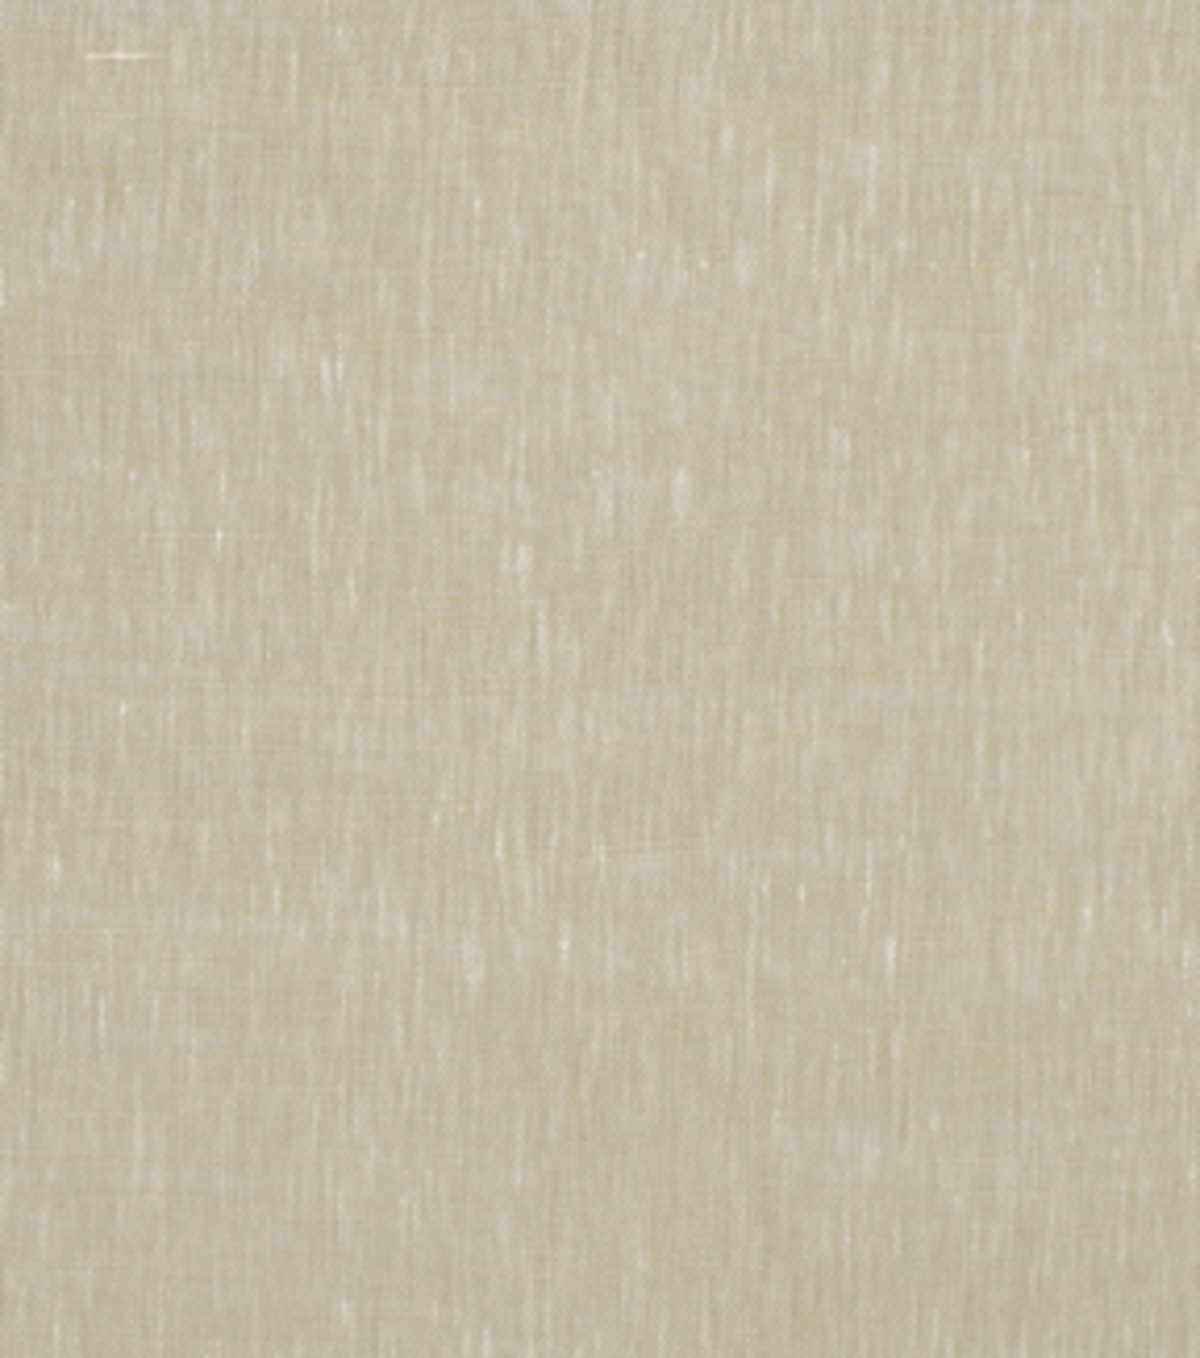 Home Decor 8\u0022x8\u0022 Fabric Swatch-Eaton Square Corinna Coin